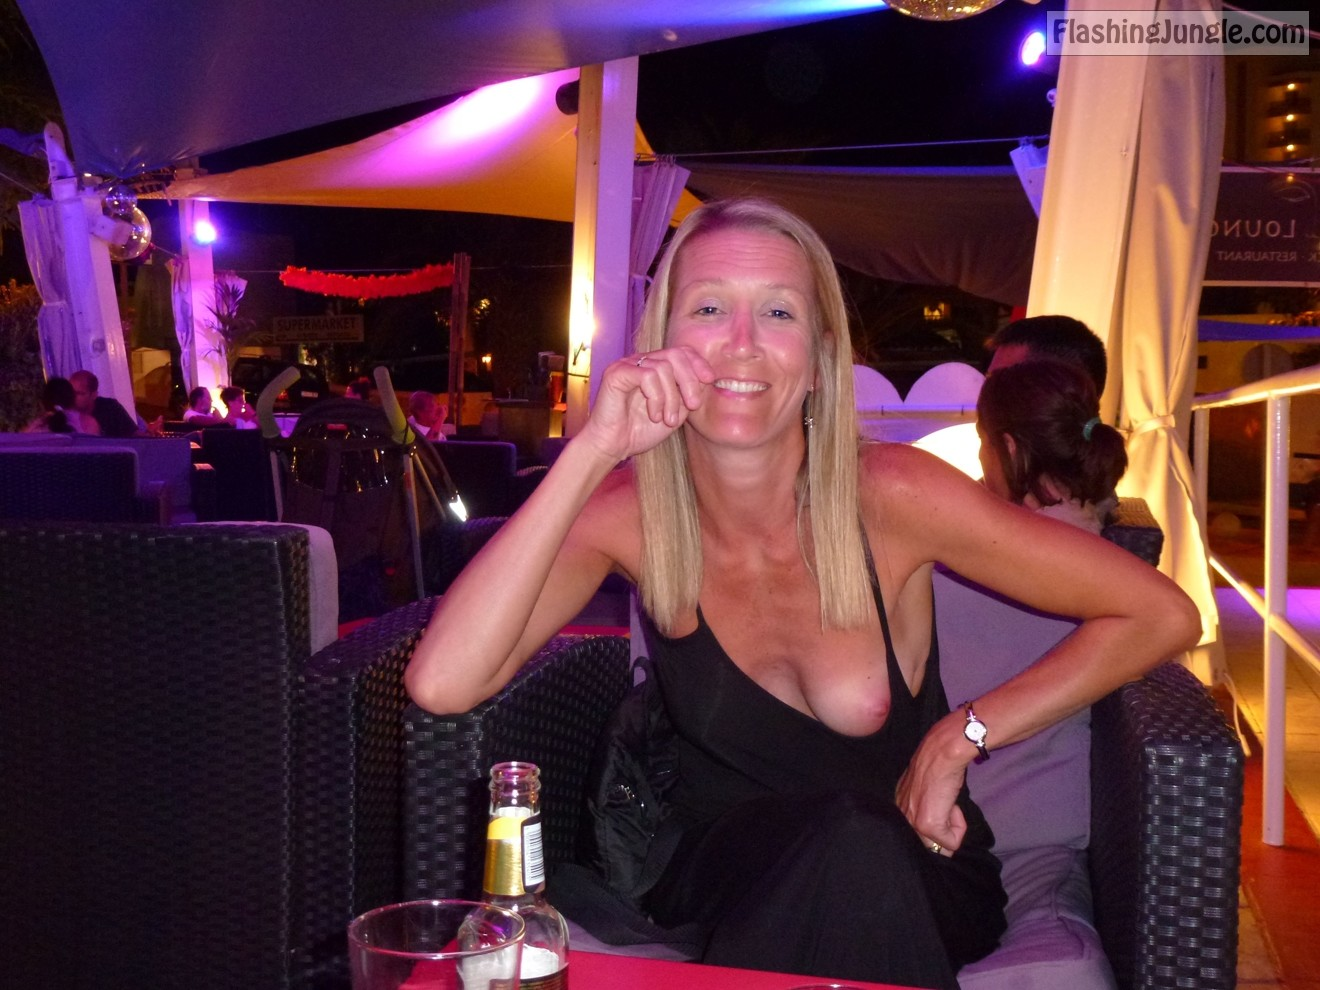 On mature wife vacation bikini in